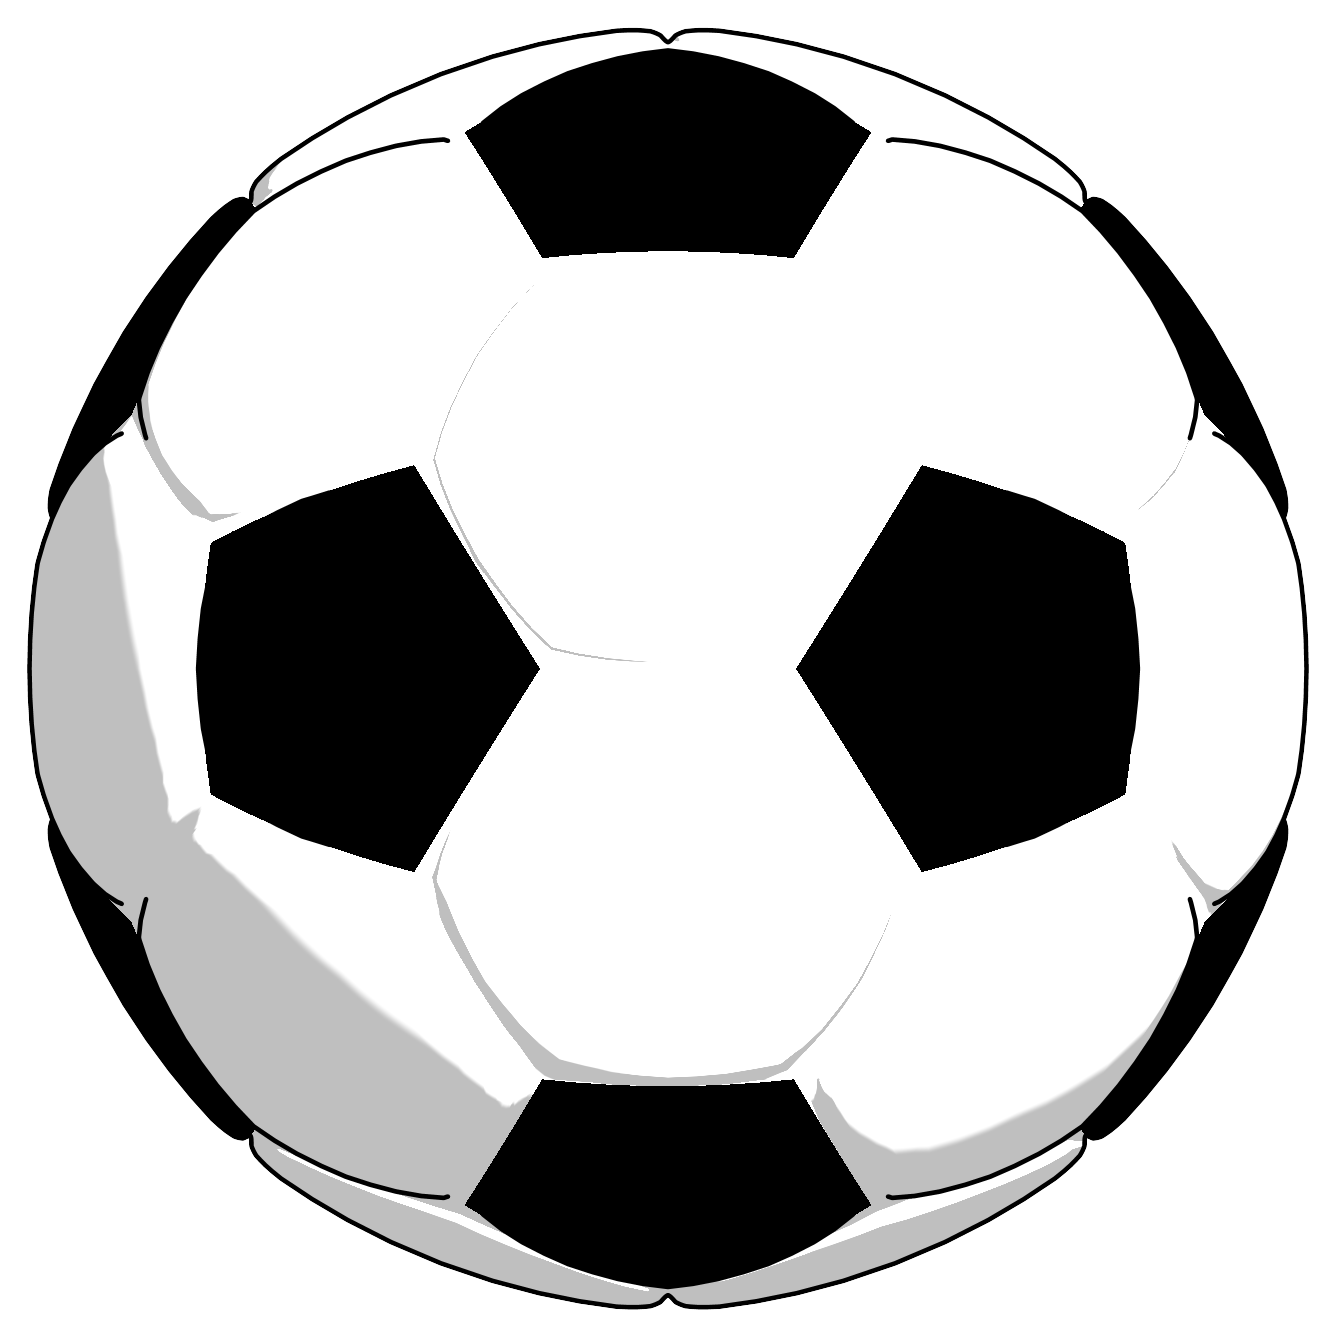 Foot clipart soccer, Foot soccer Transparent FREE for.